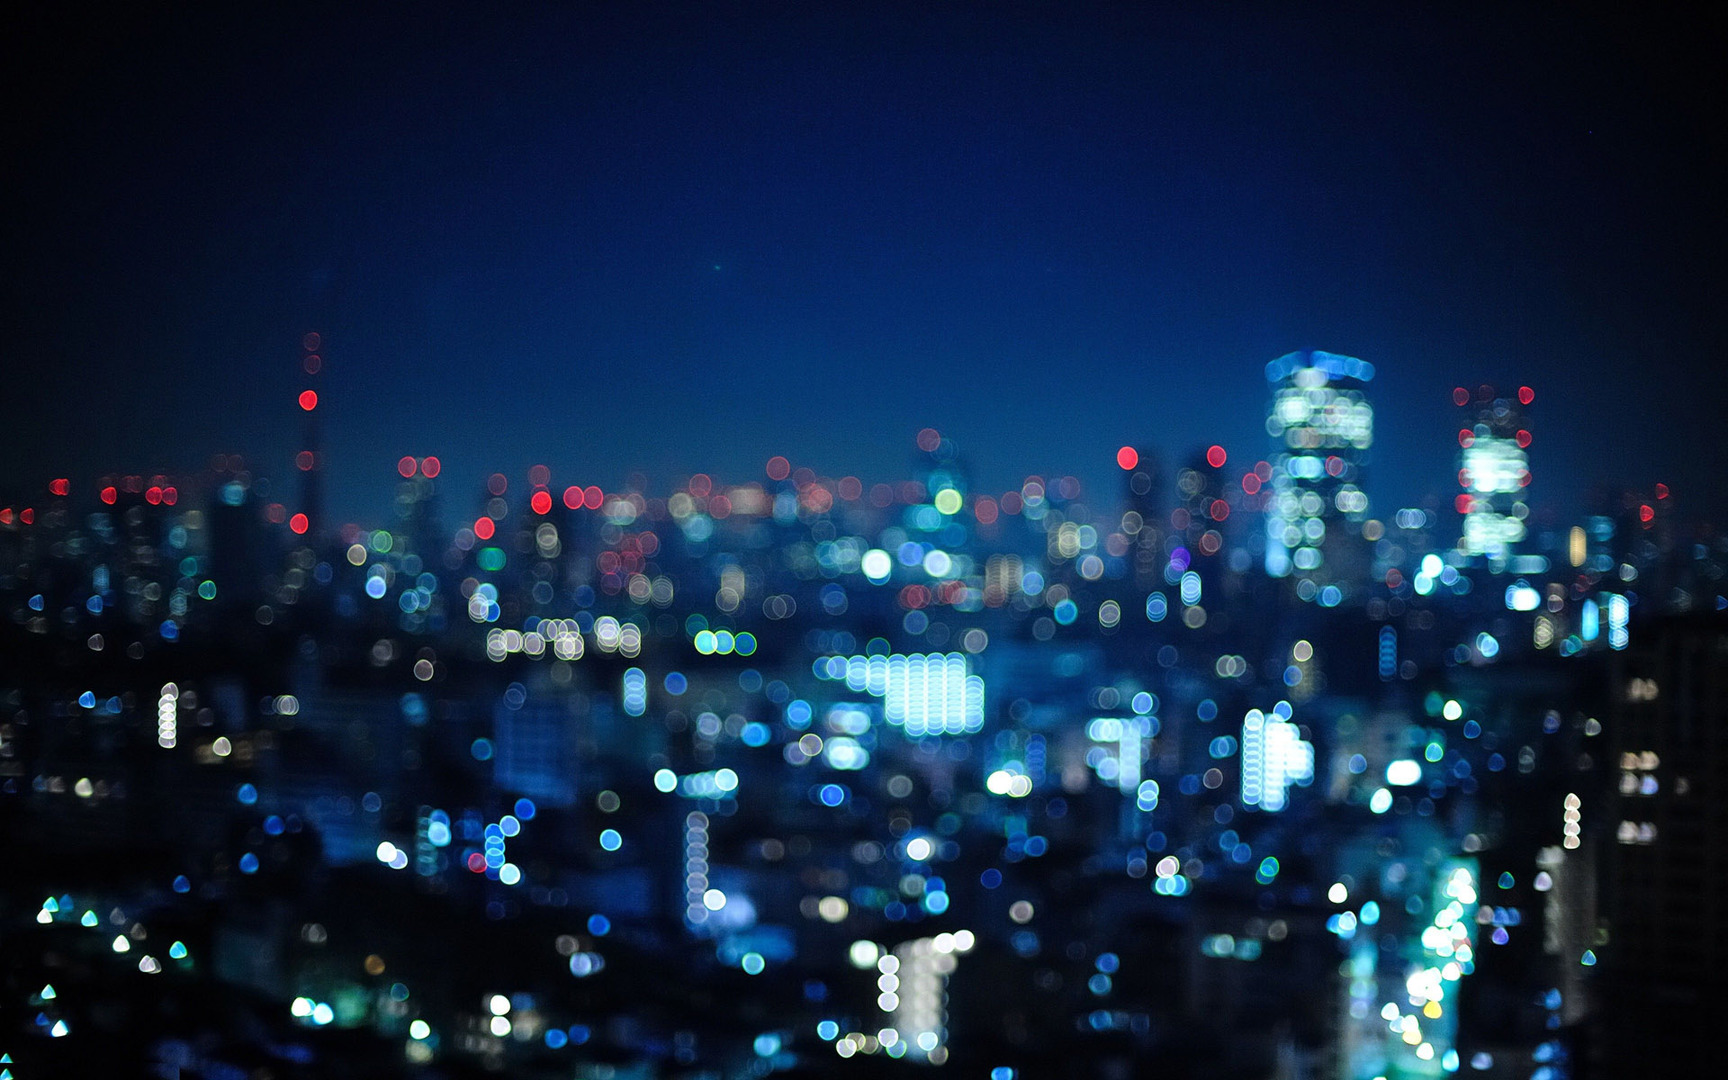 blurry-city-lights-14941